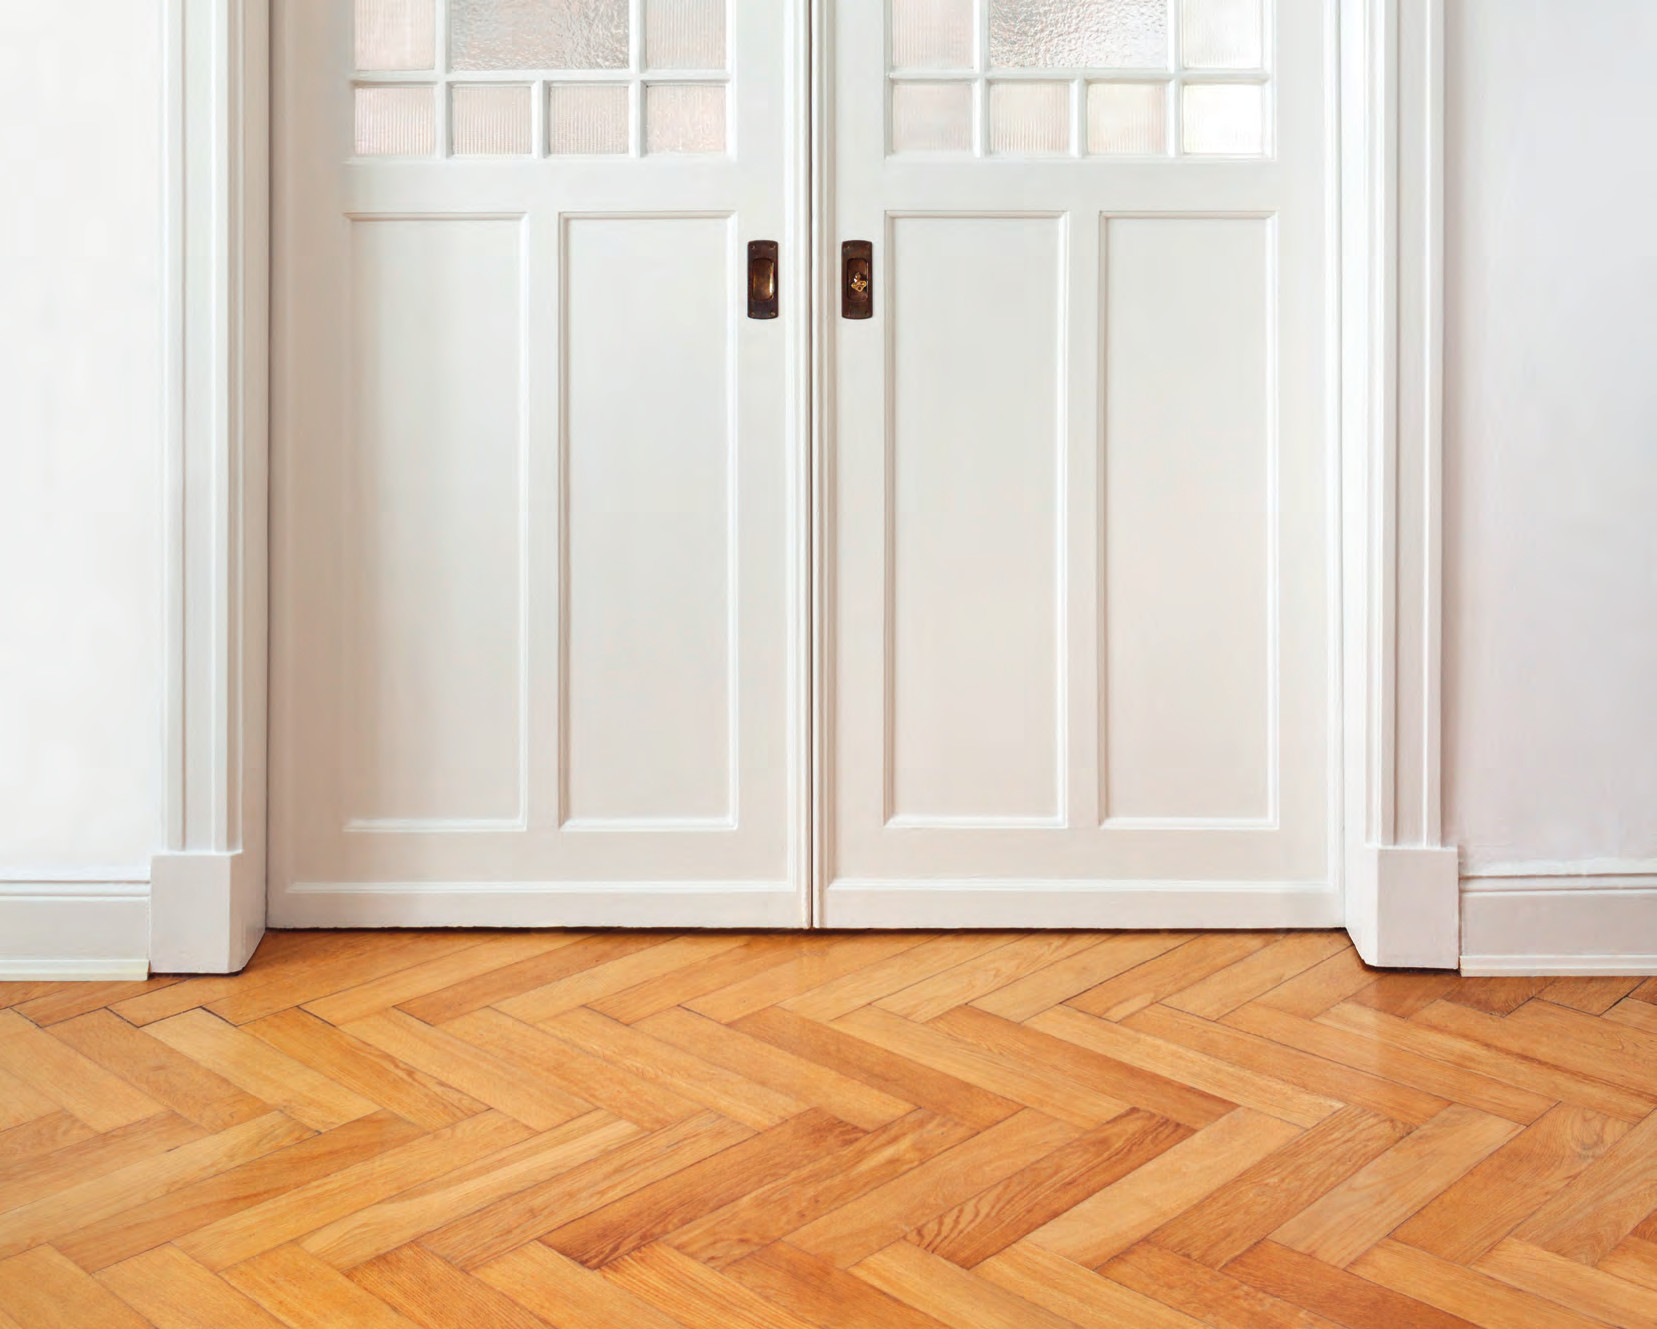 20 Trendy Unfinished tongue and Groove Hardwood Flooring 2021 free download unfinished tongue and groove hardwood flooring of brooks bros for hardwood flooring 2016 17 price list pdf inside wood flooring herringbone chevron solid herringbone h1001 solid character oa